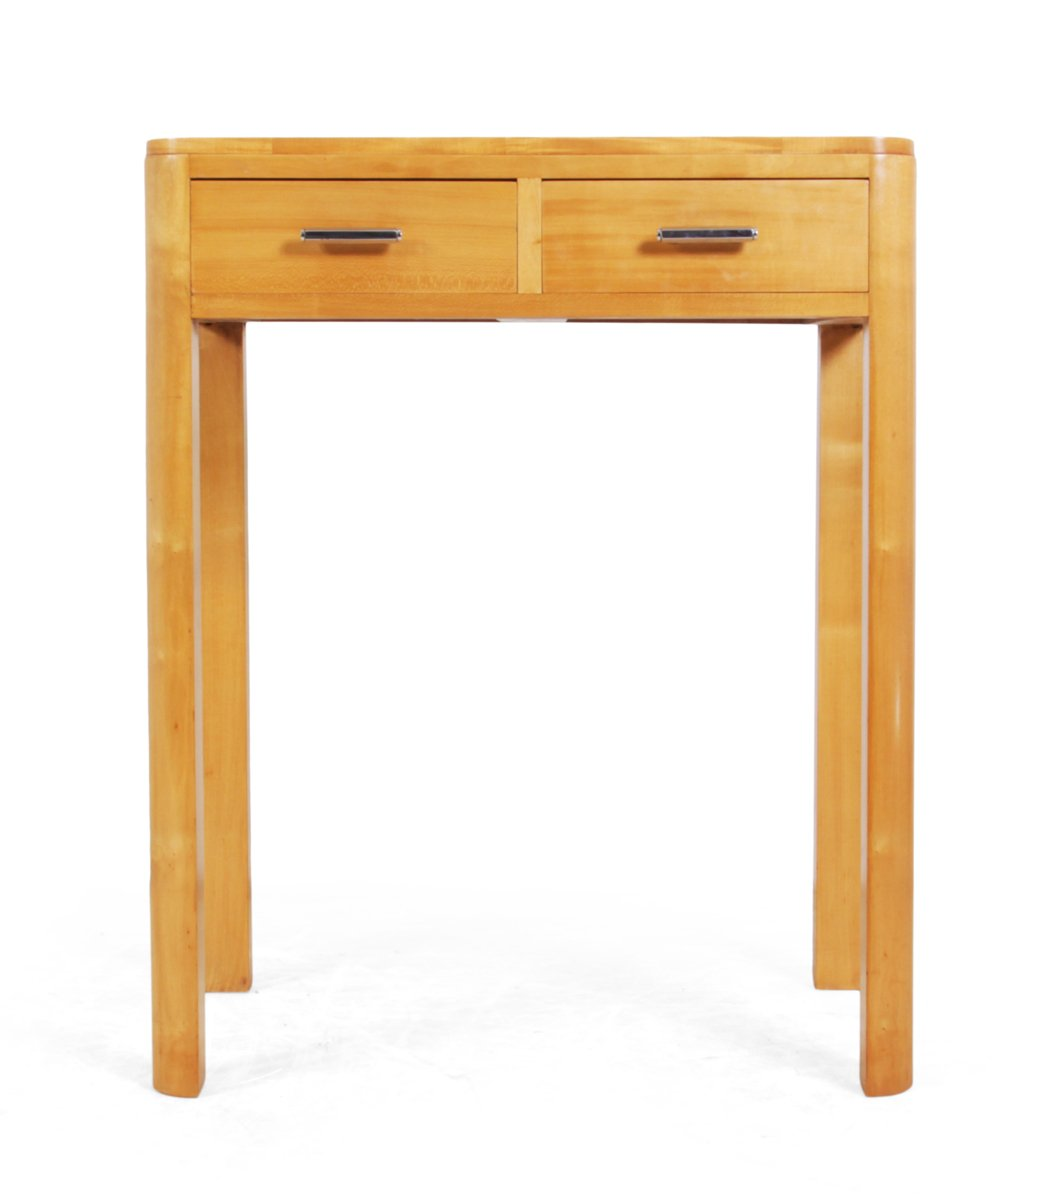 Vintage art deco satin birch side table for sale at pamono - Deco table vintage ...